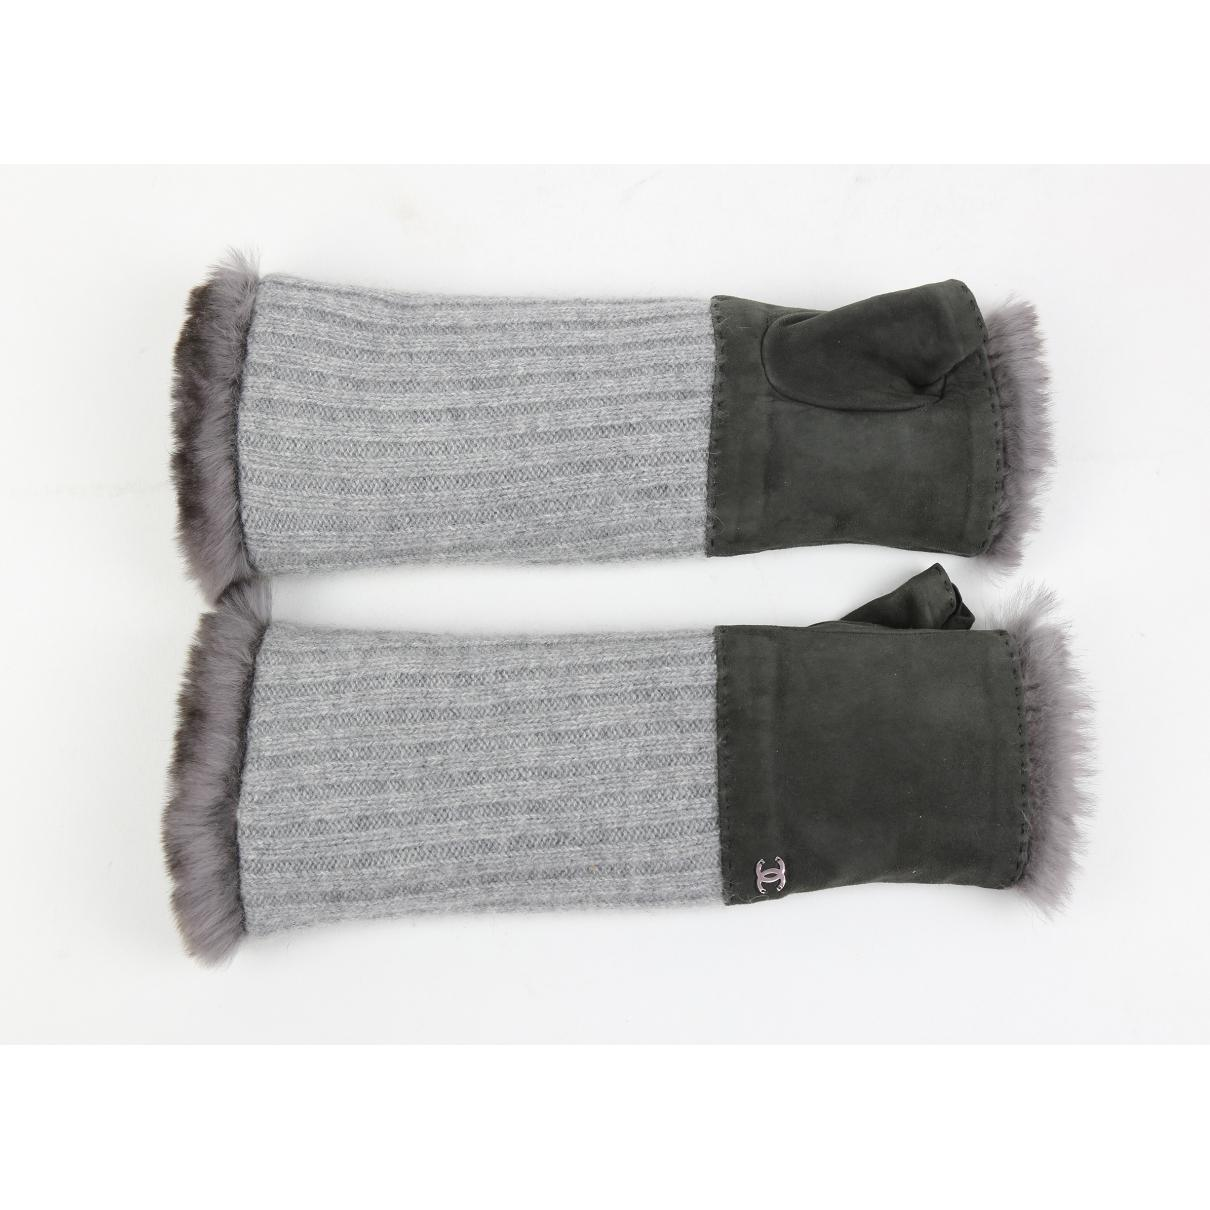 f2c715aadaa Chanel Leather Gloves in Gray - Lyst